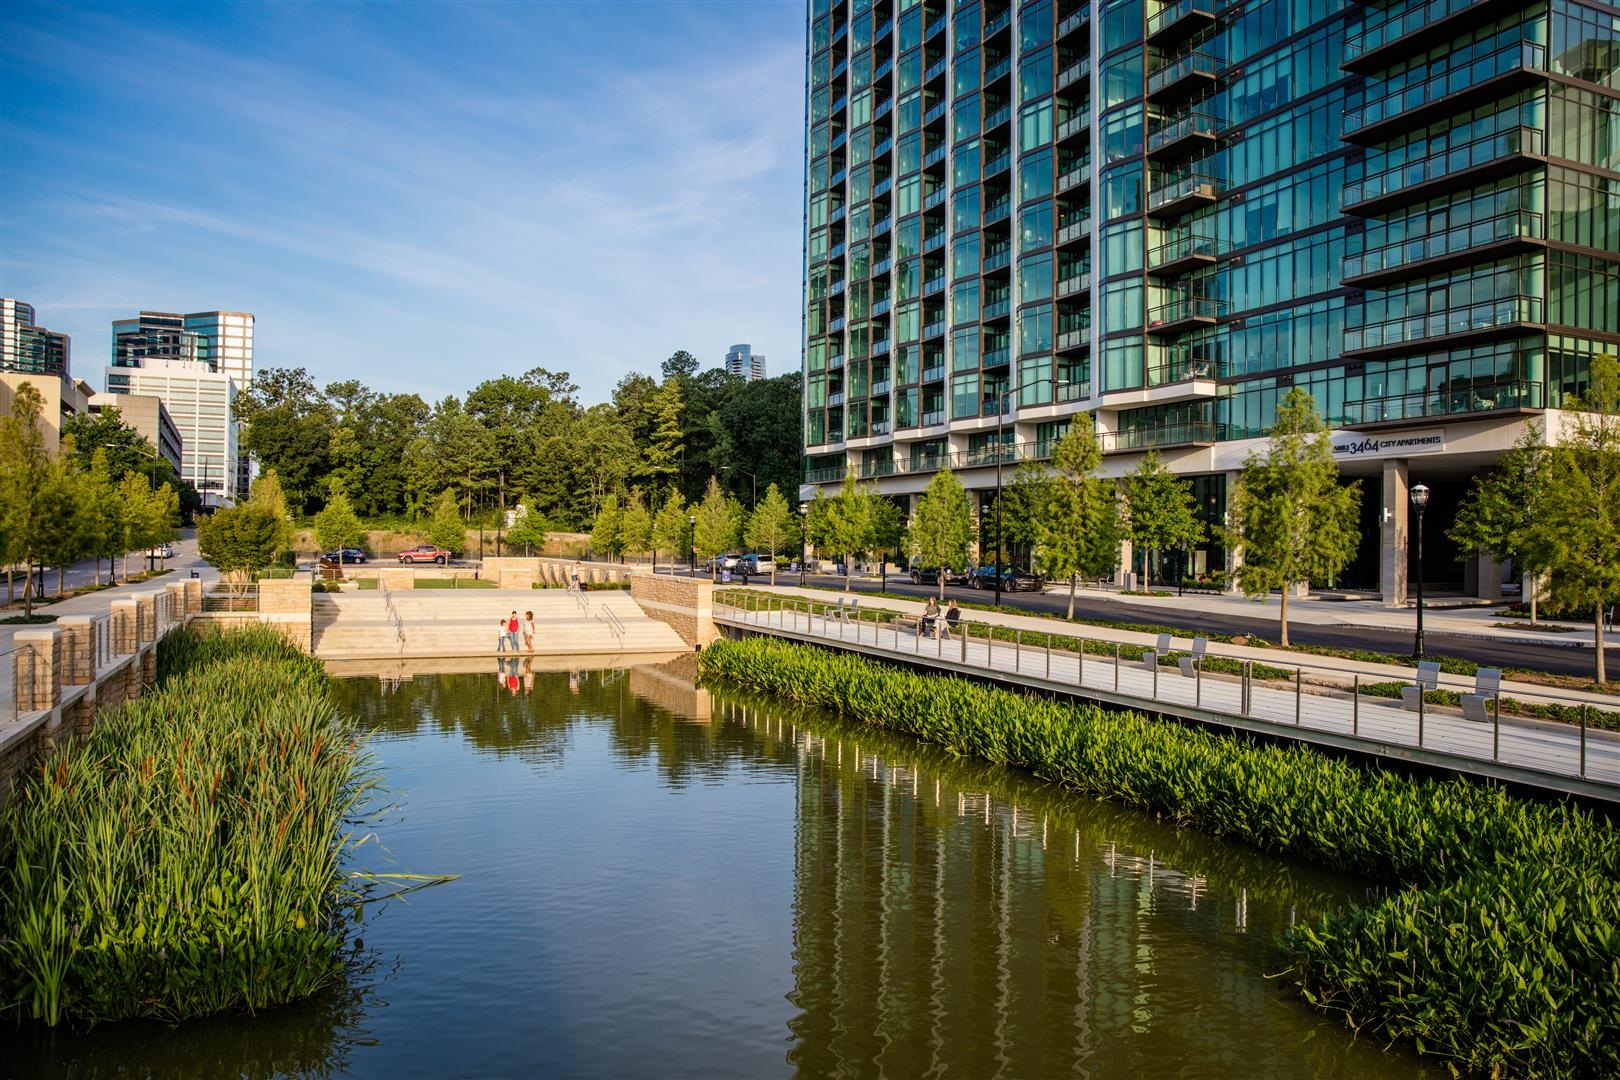 2. Marie Sims Park - City Place | Atlanta, Georgia